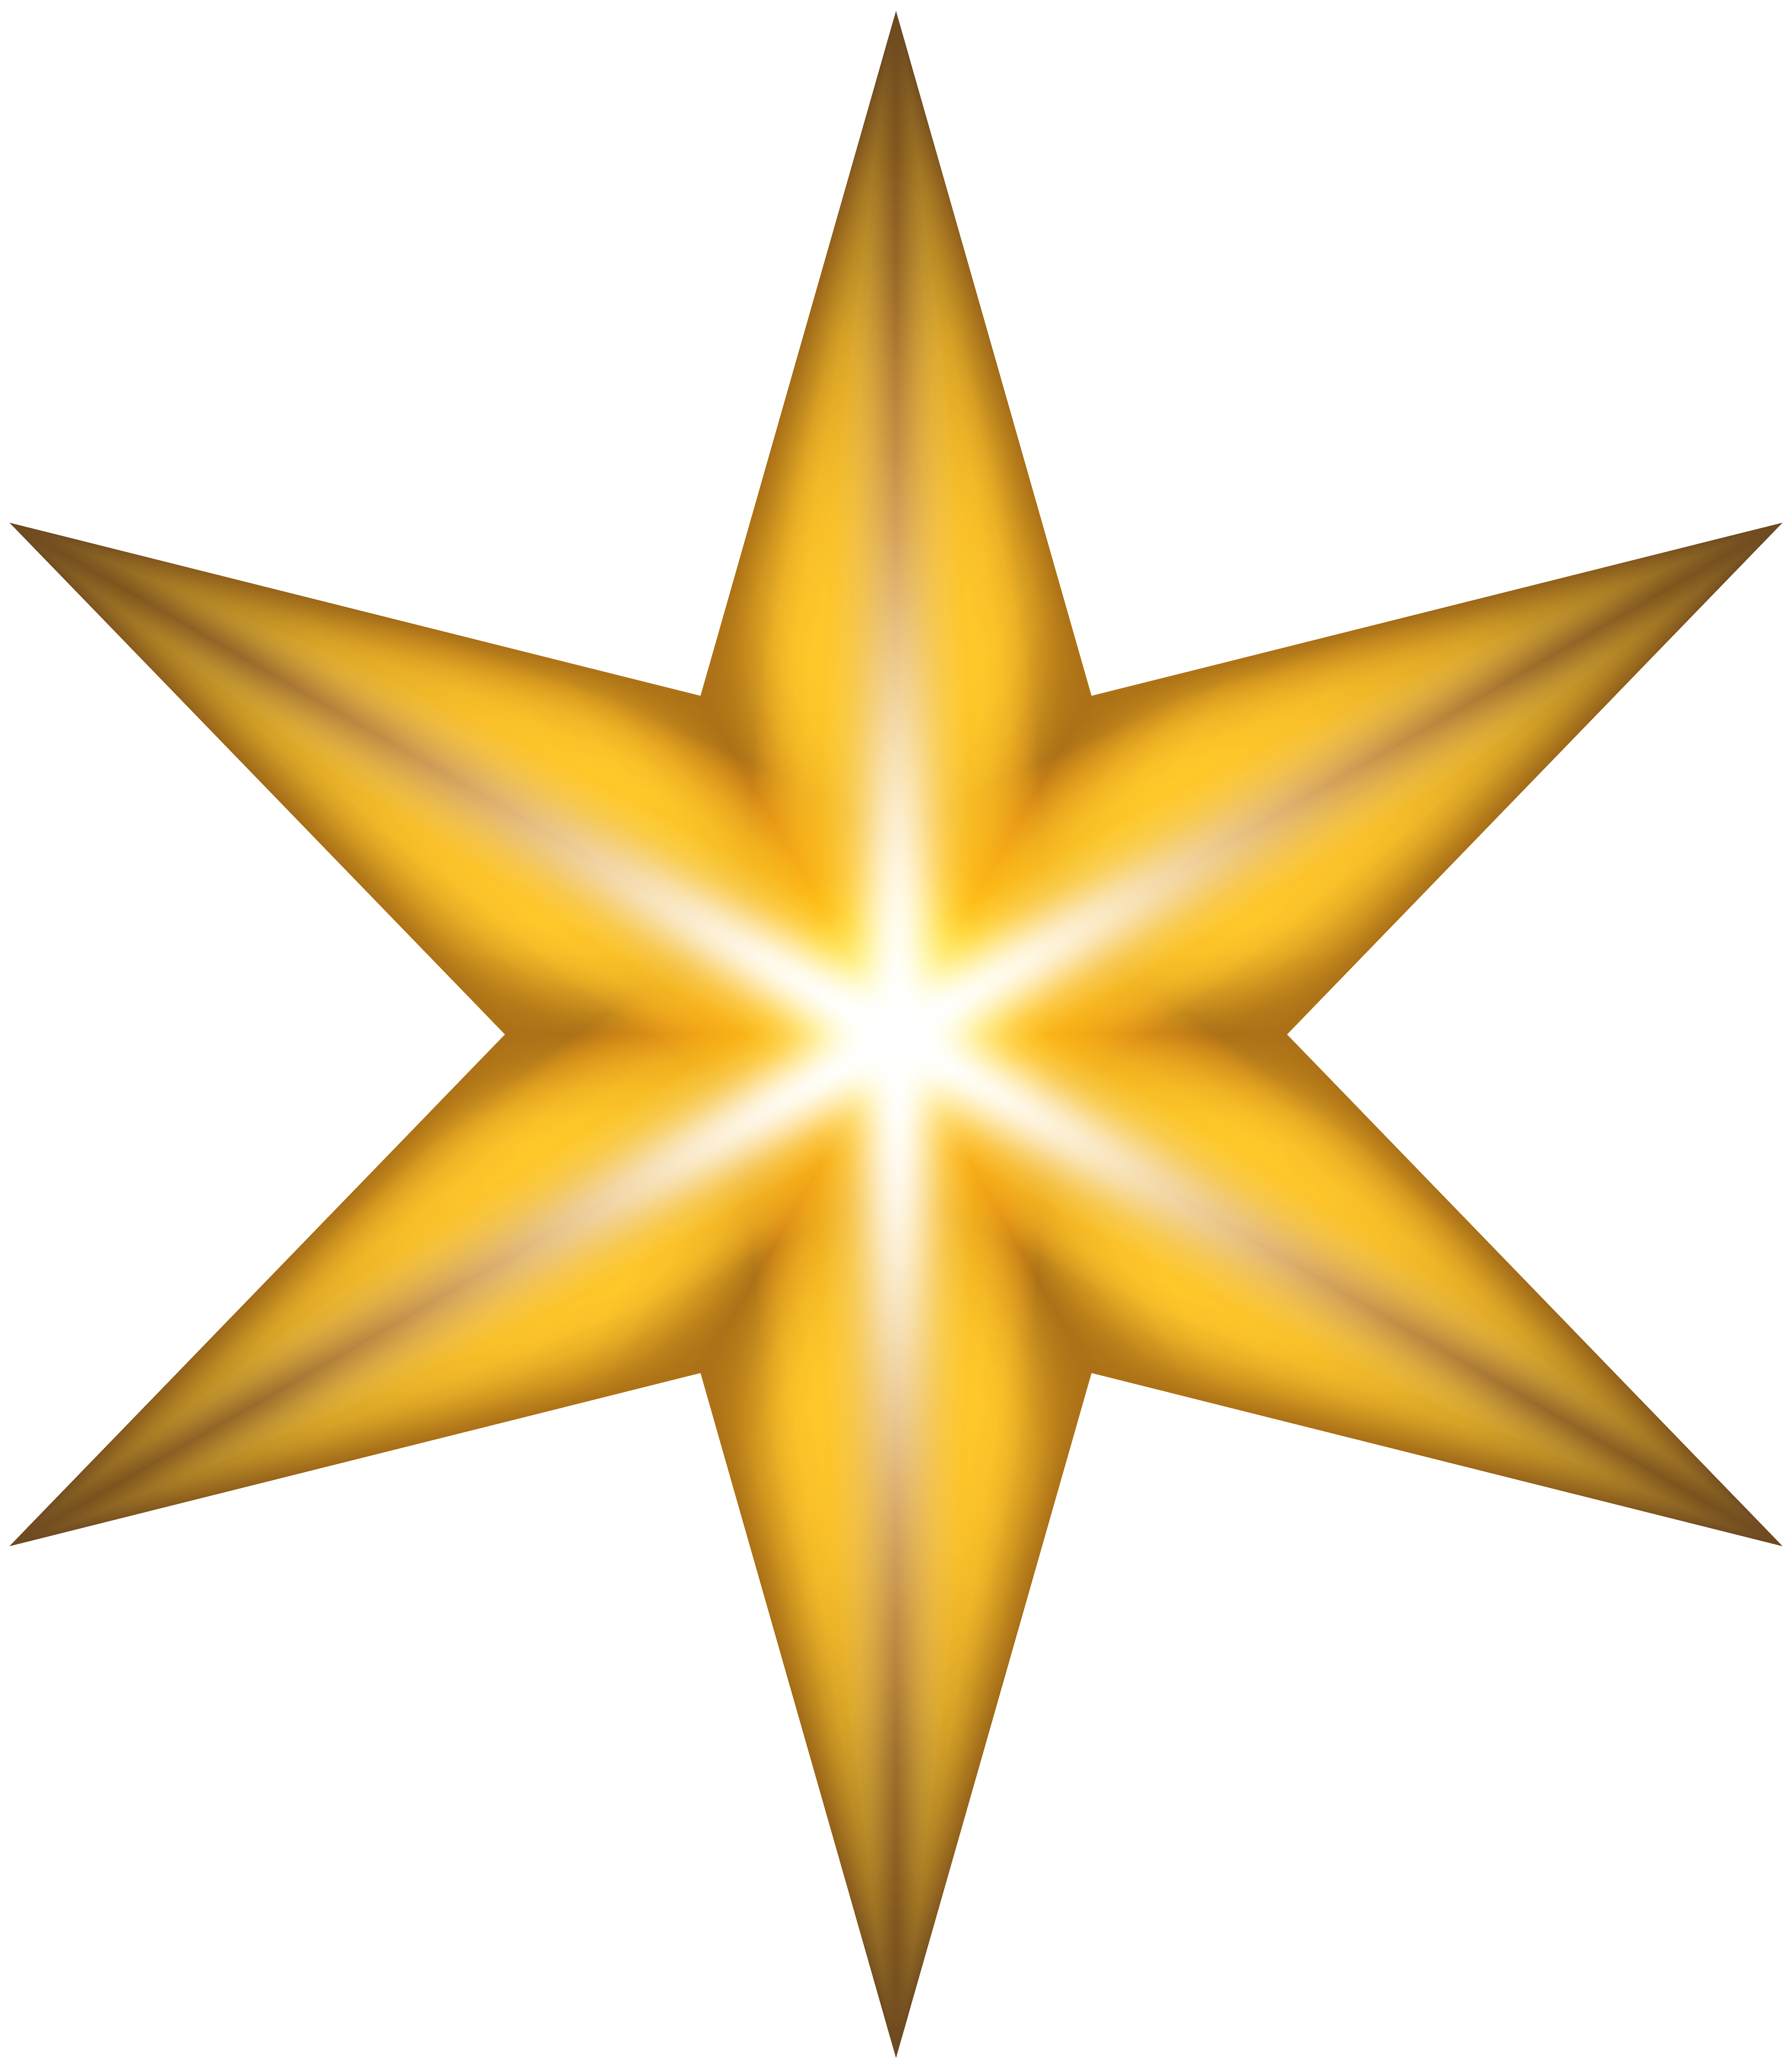 Different sized star clipart. Transparent clip art png